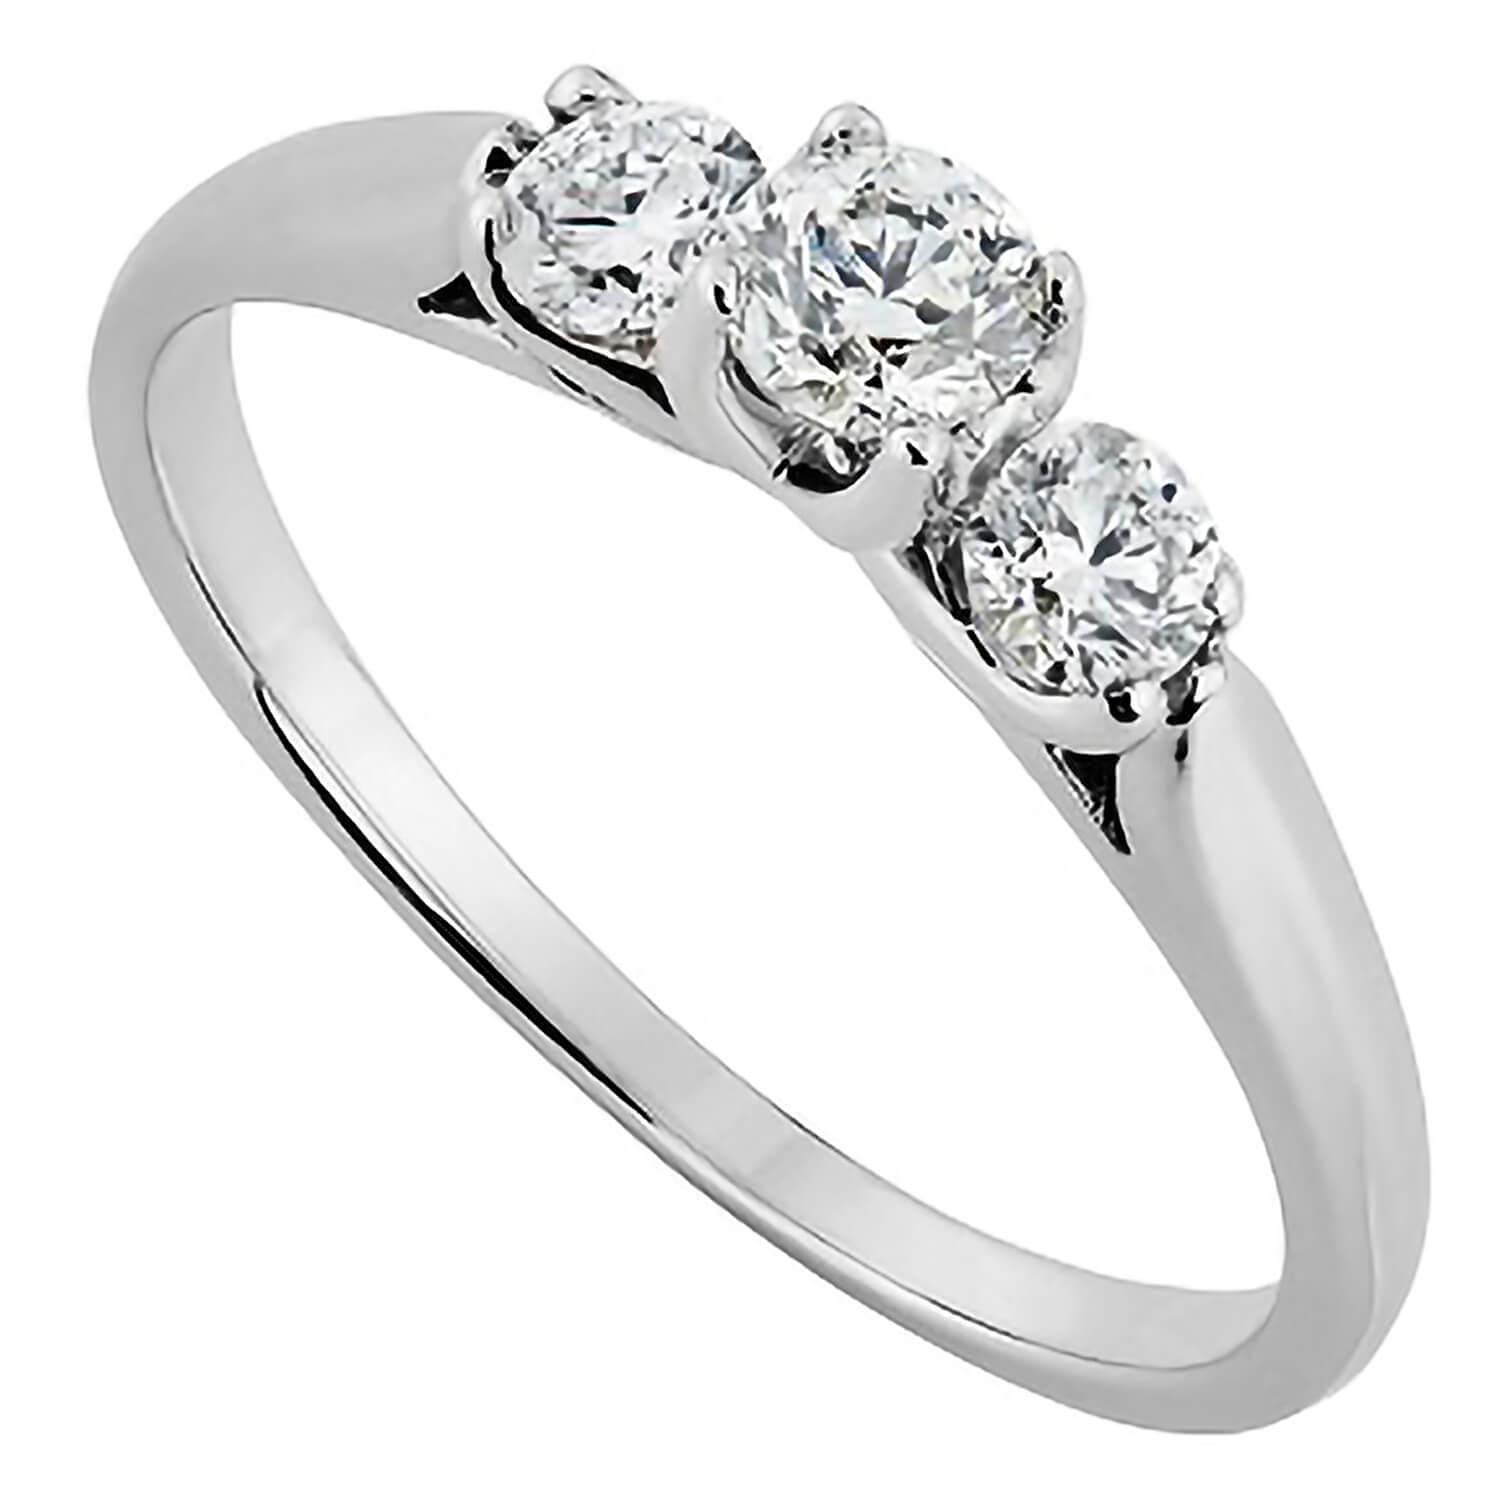 18ct white gold 0.50 carat diamond three stone ring